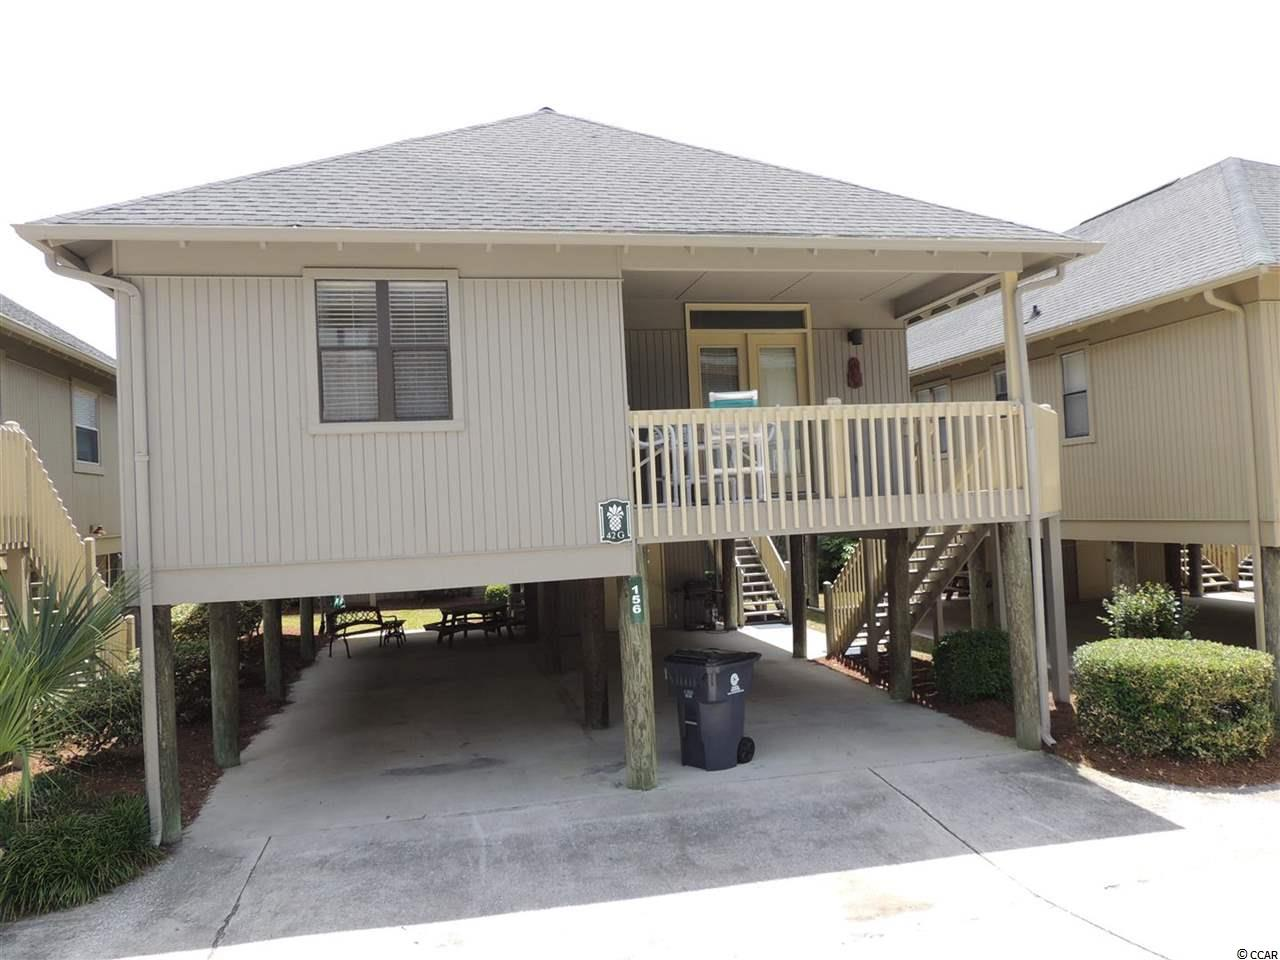 House in Myrtle Beach South Carolina